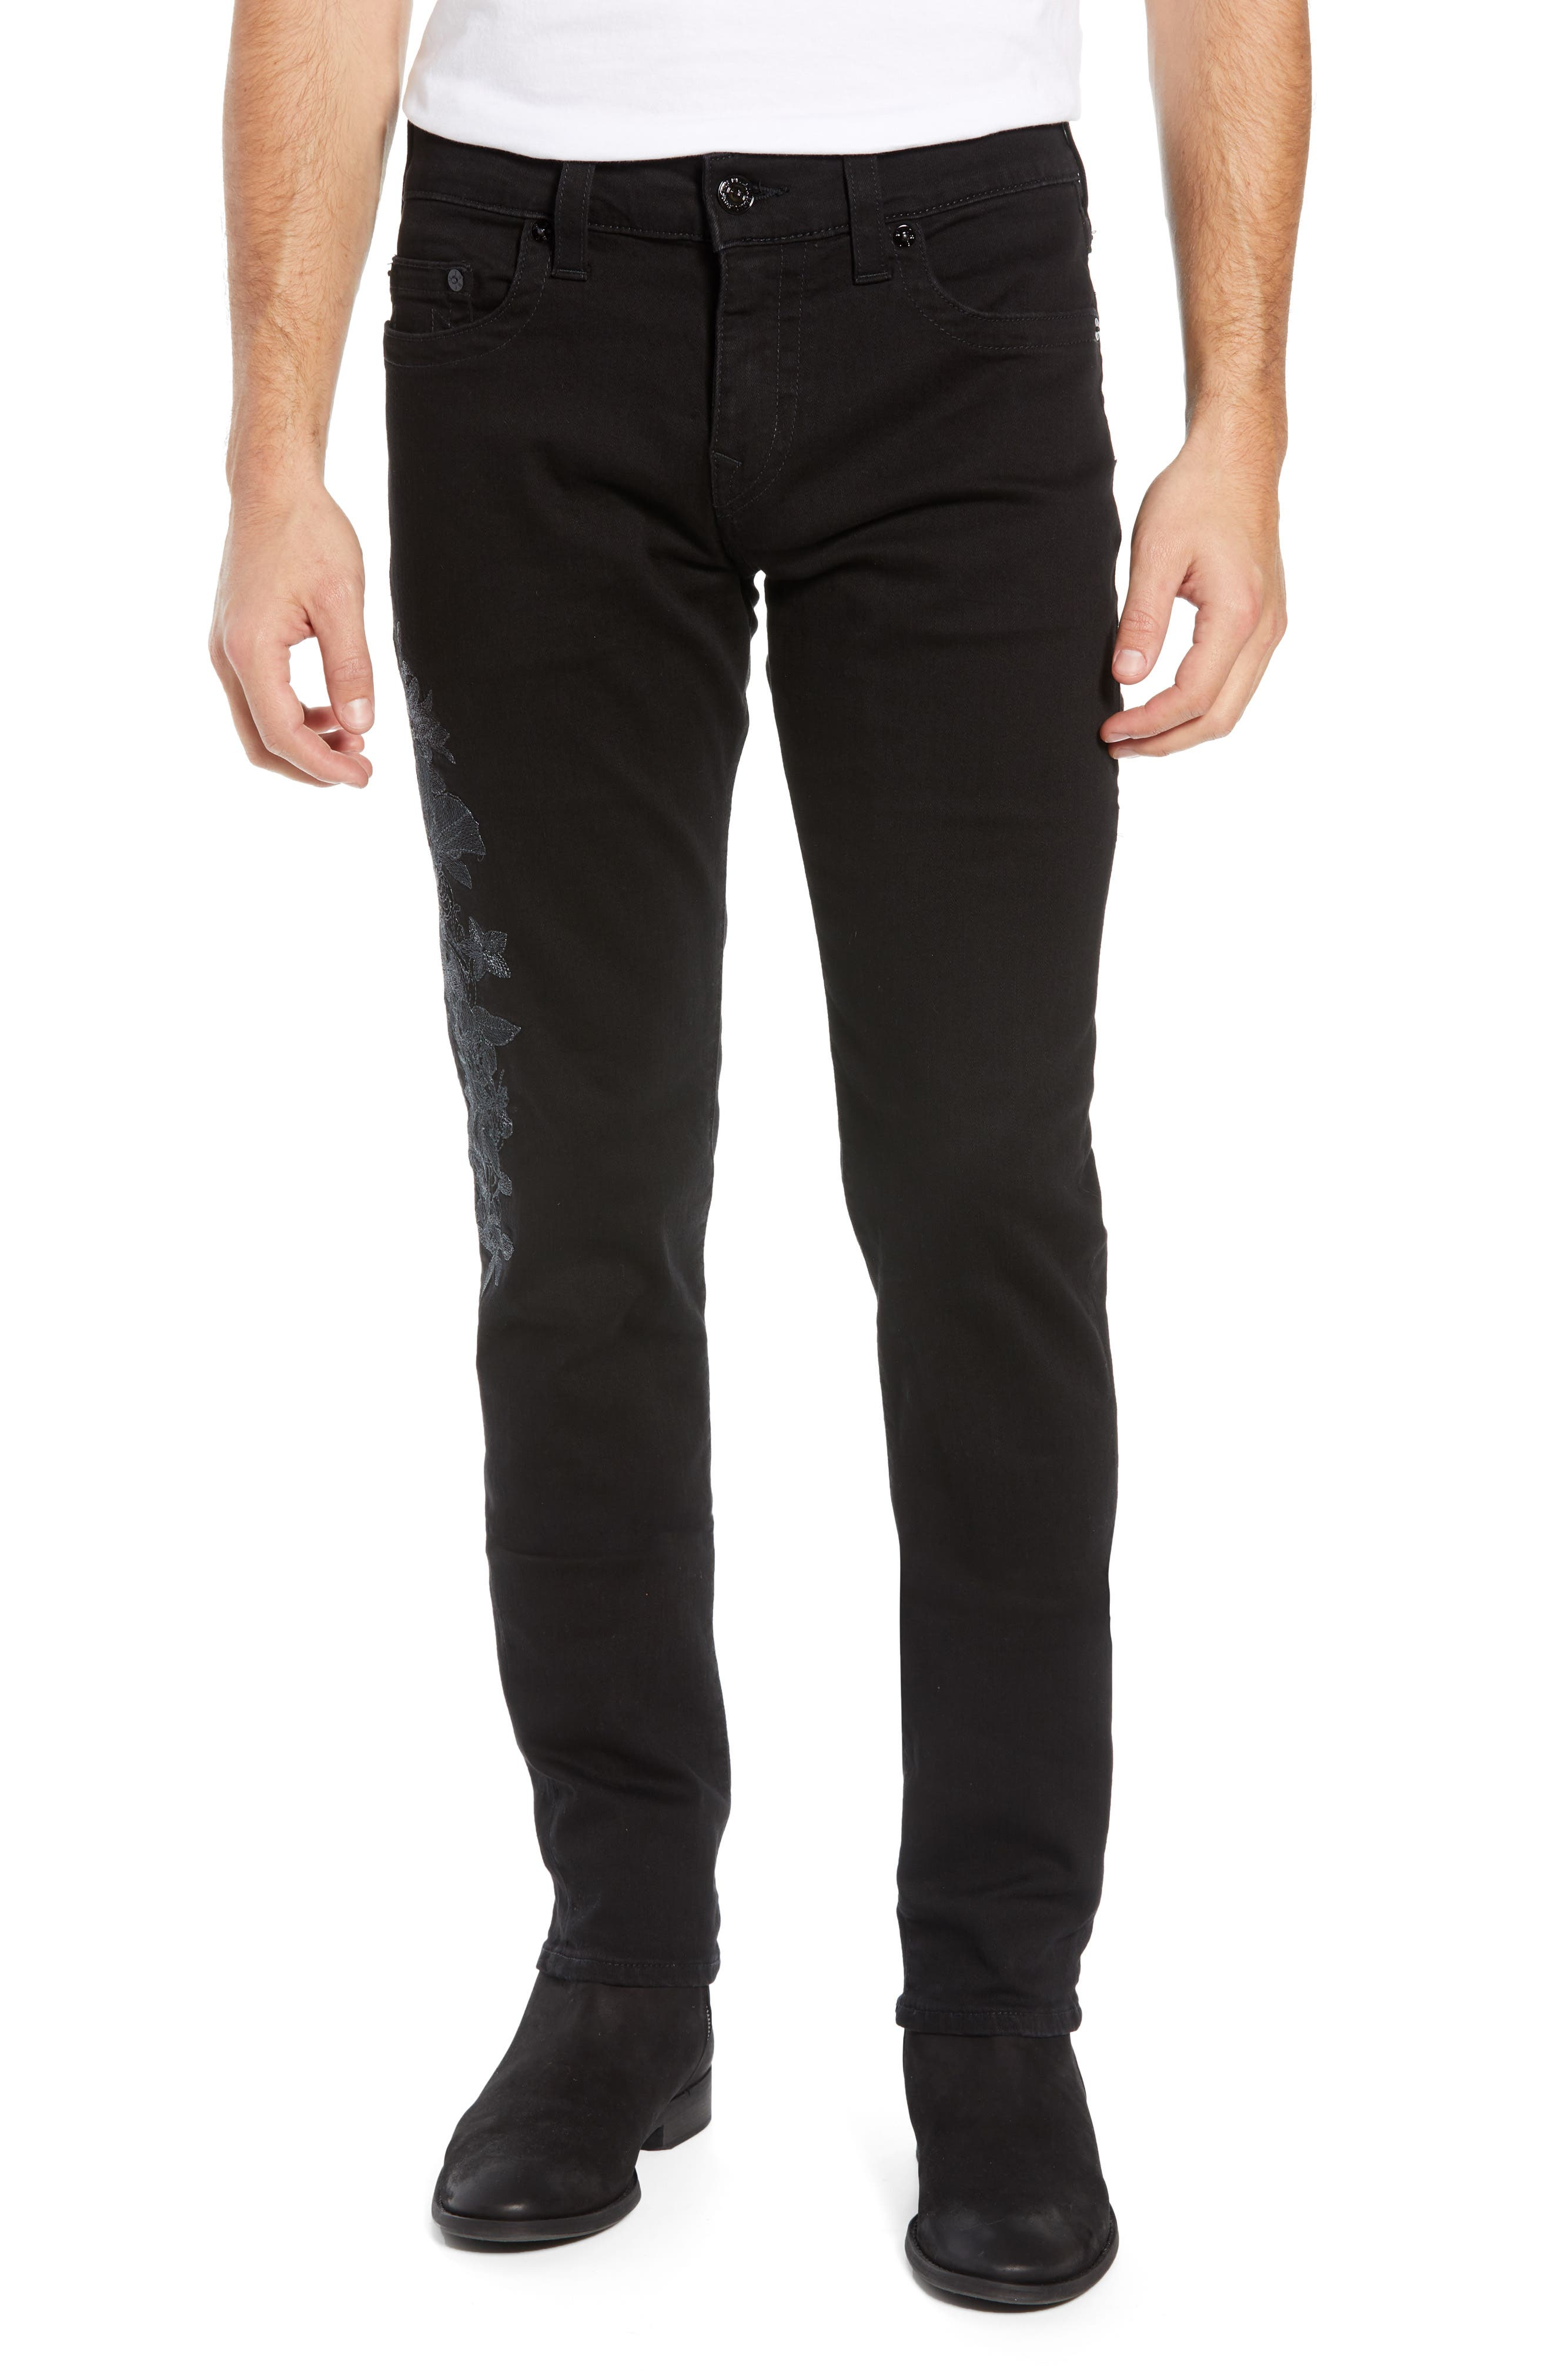 TRUE RELIGION BRAND JEANS Rocco Skinny Fit Jeans, Main, color, FPCB MAGNETIC FIELD